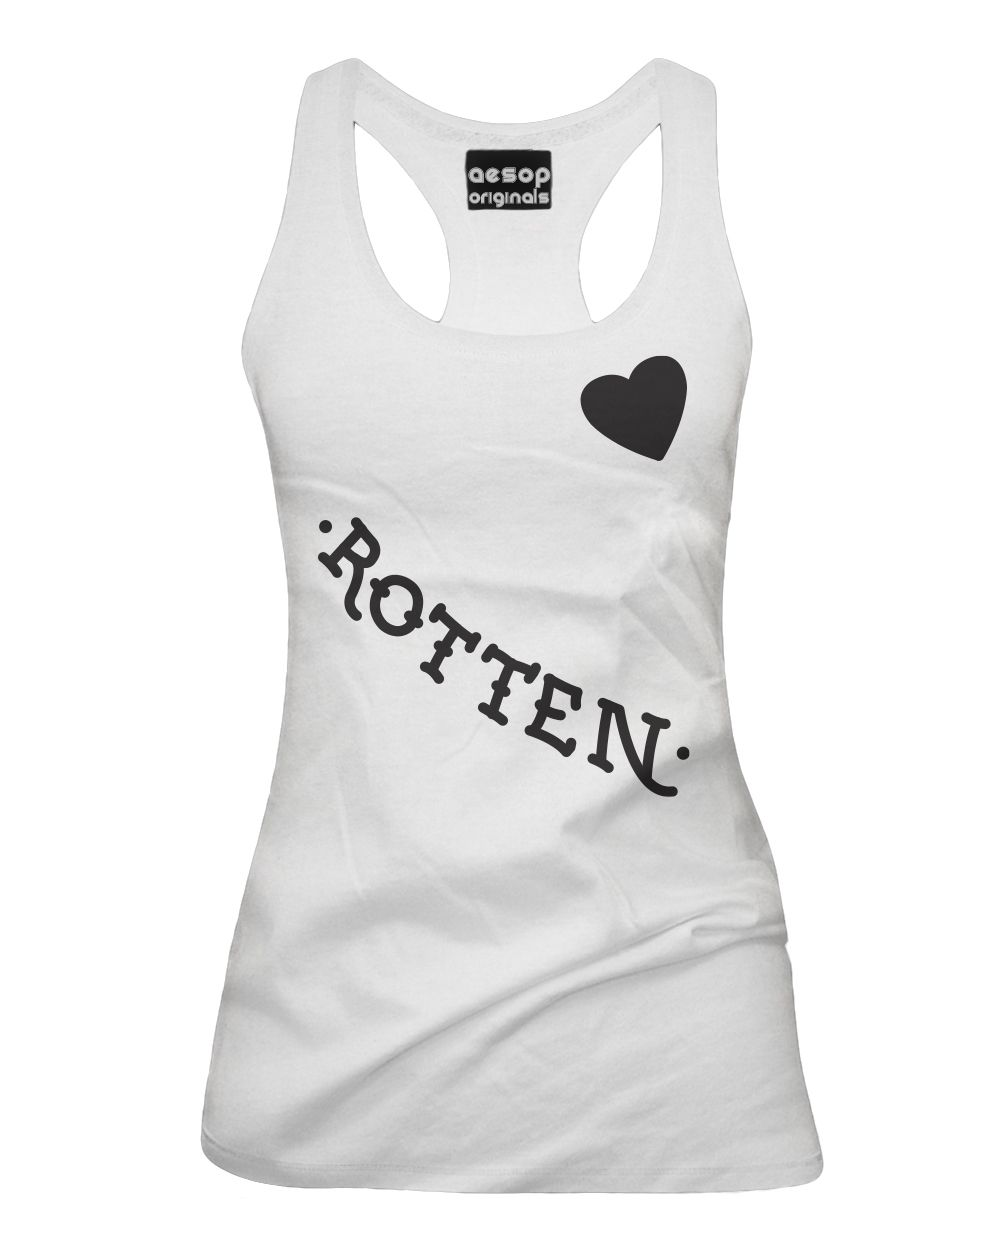 Harley Quinn's Rotten - Face Tattoos - Tank Top Aesop Originals Clothing (White)…